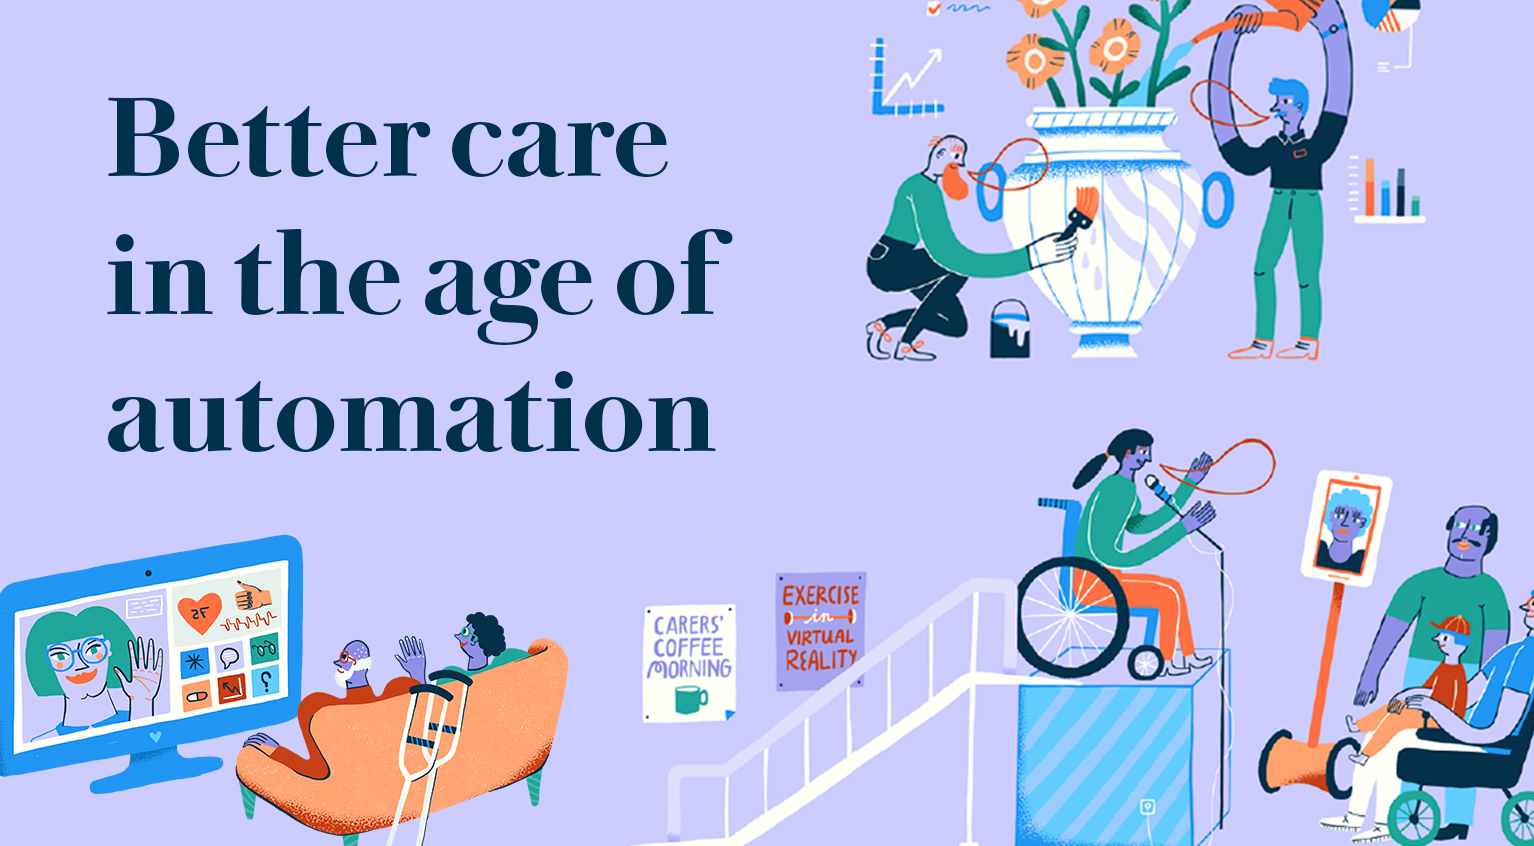 Better Care in the Age of Automation